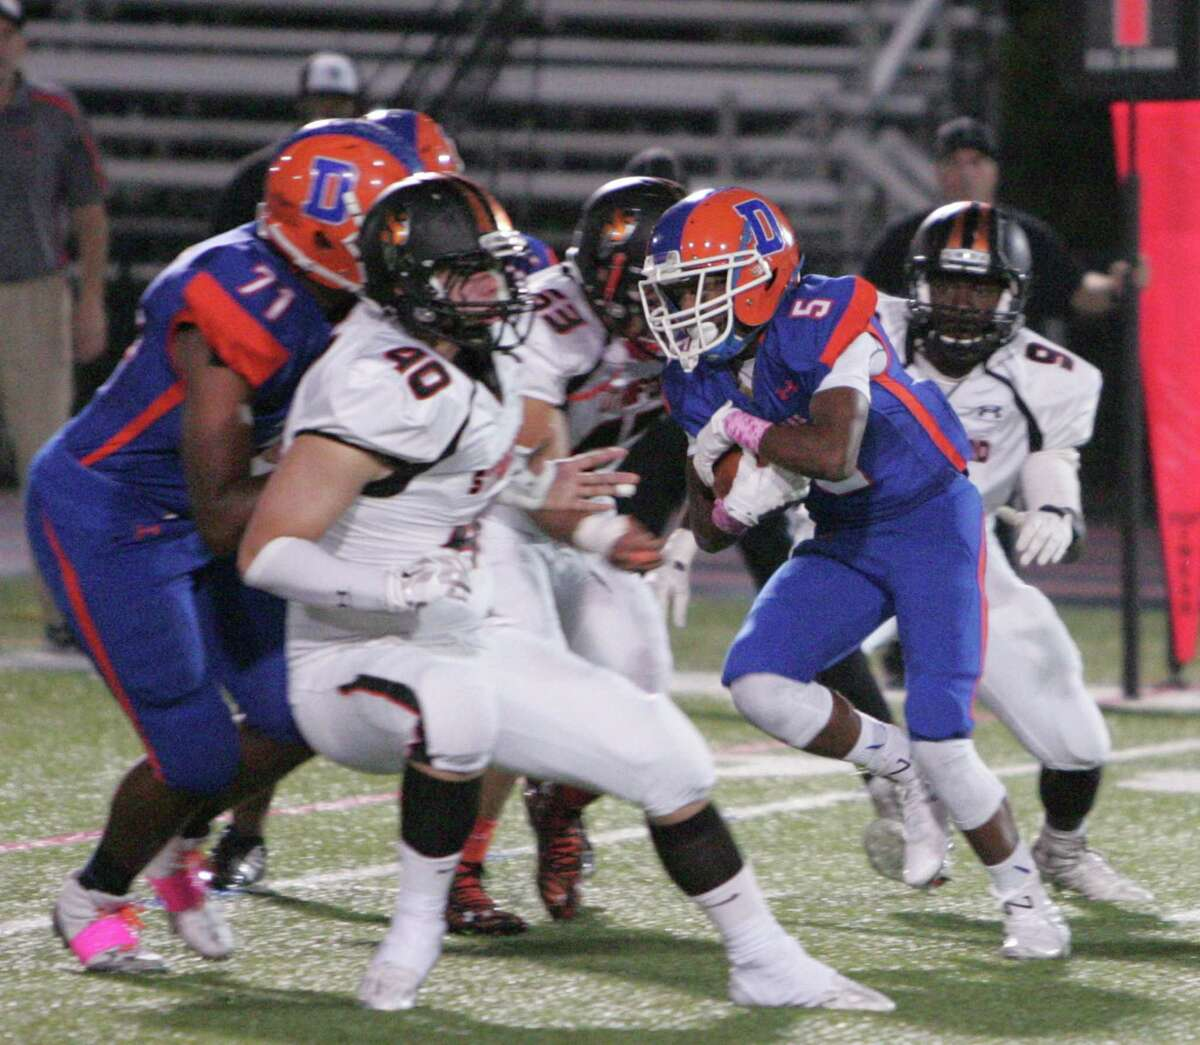 Stamford defeated Danbury 32-19 in a varsity football game played in Danbury on Oct. 9, 2015.